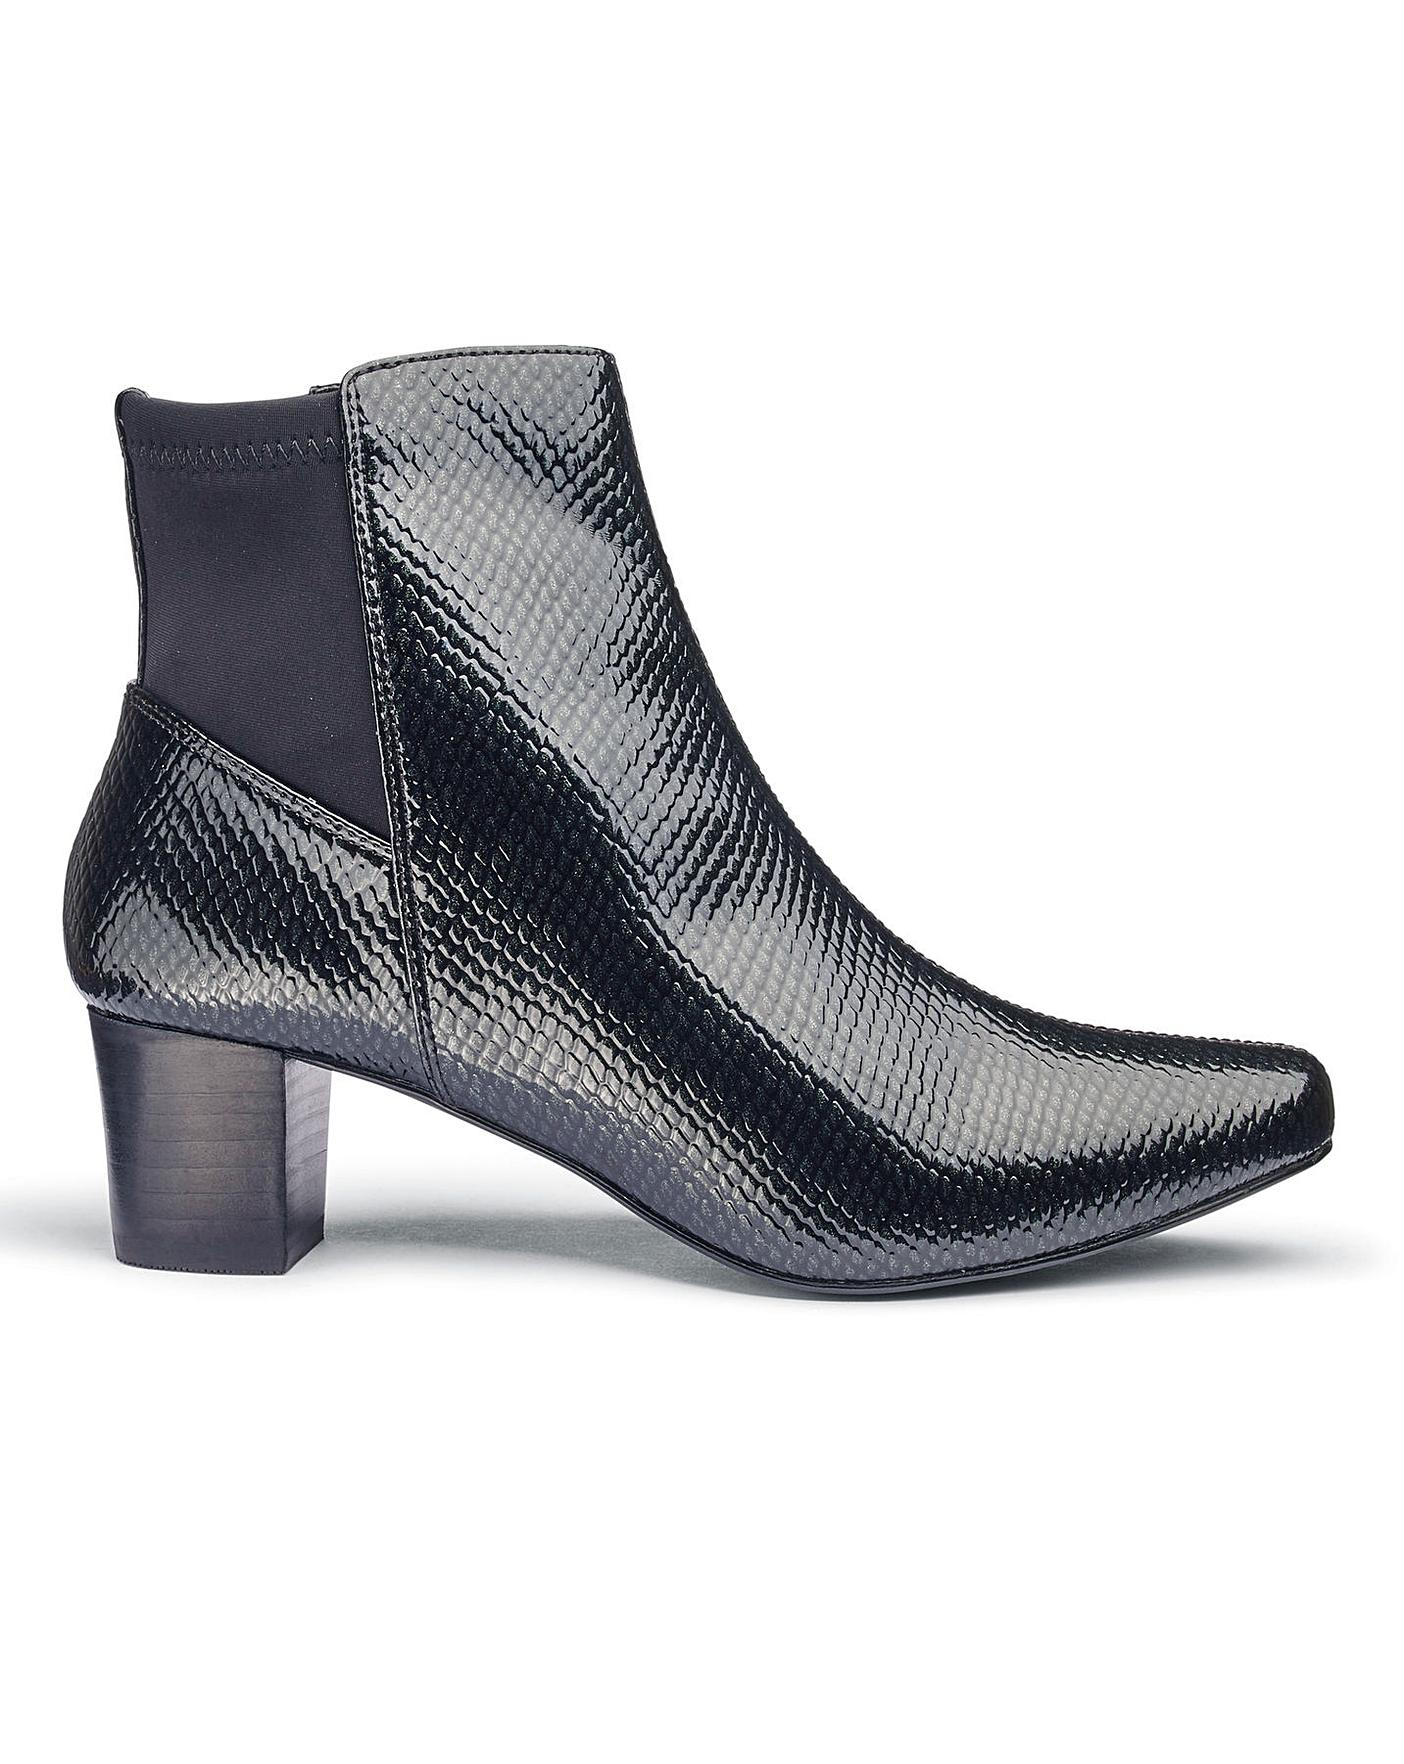 805e438ce8 E fit ladies ankle boots. LADIES CLARKS BLACK LEATHER ANKLE BOOT E ...